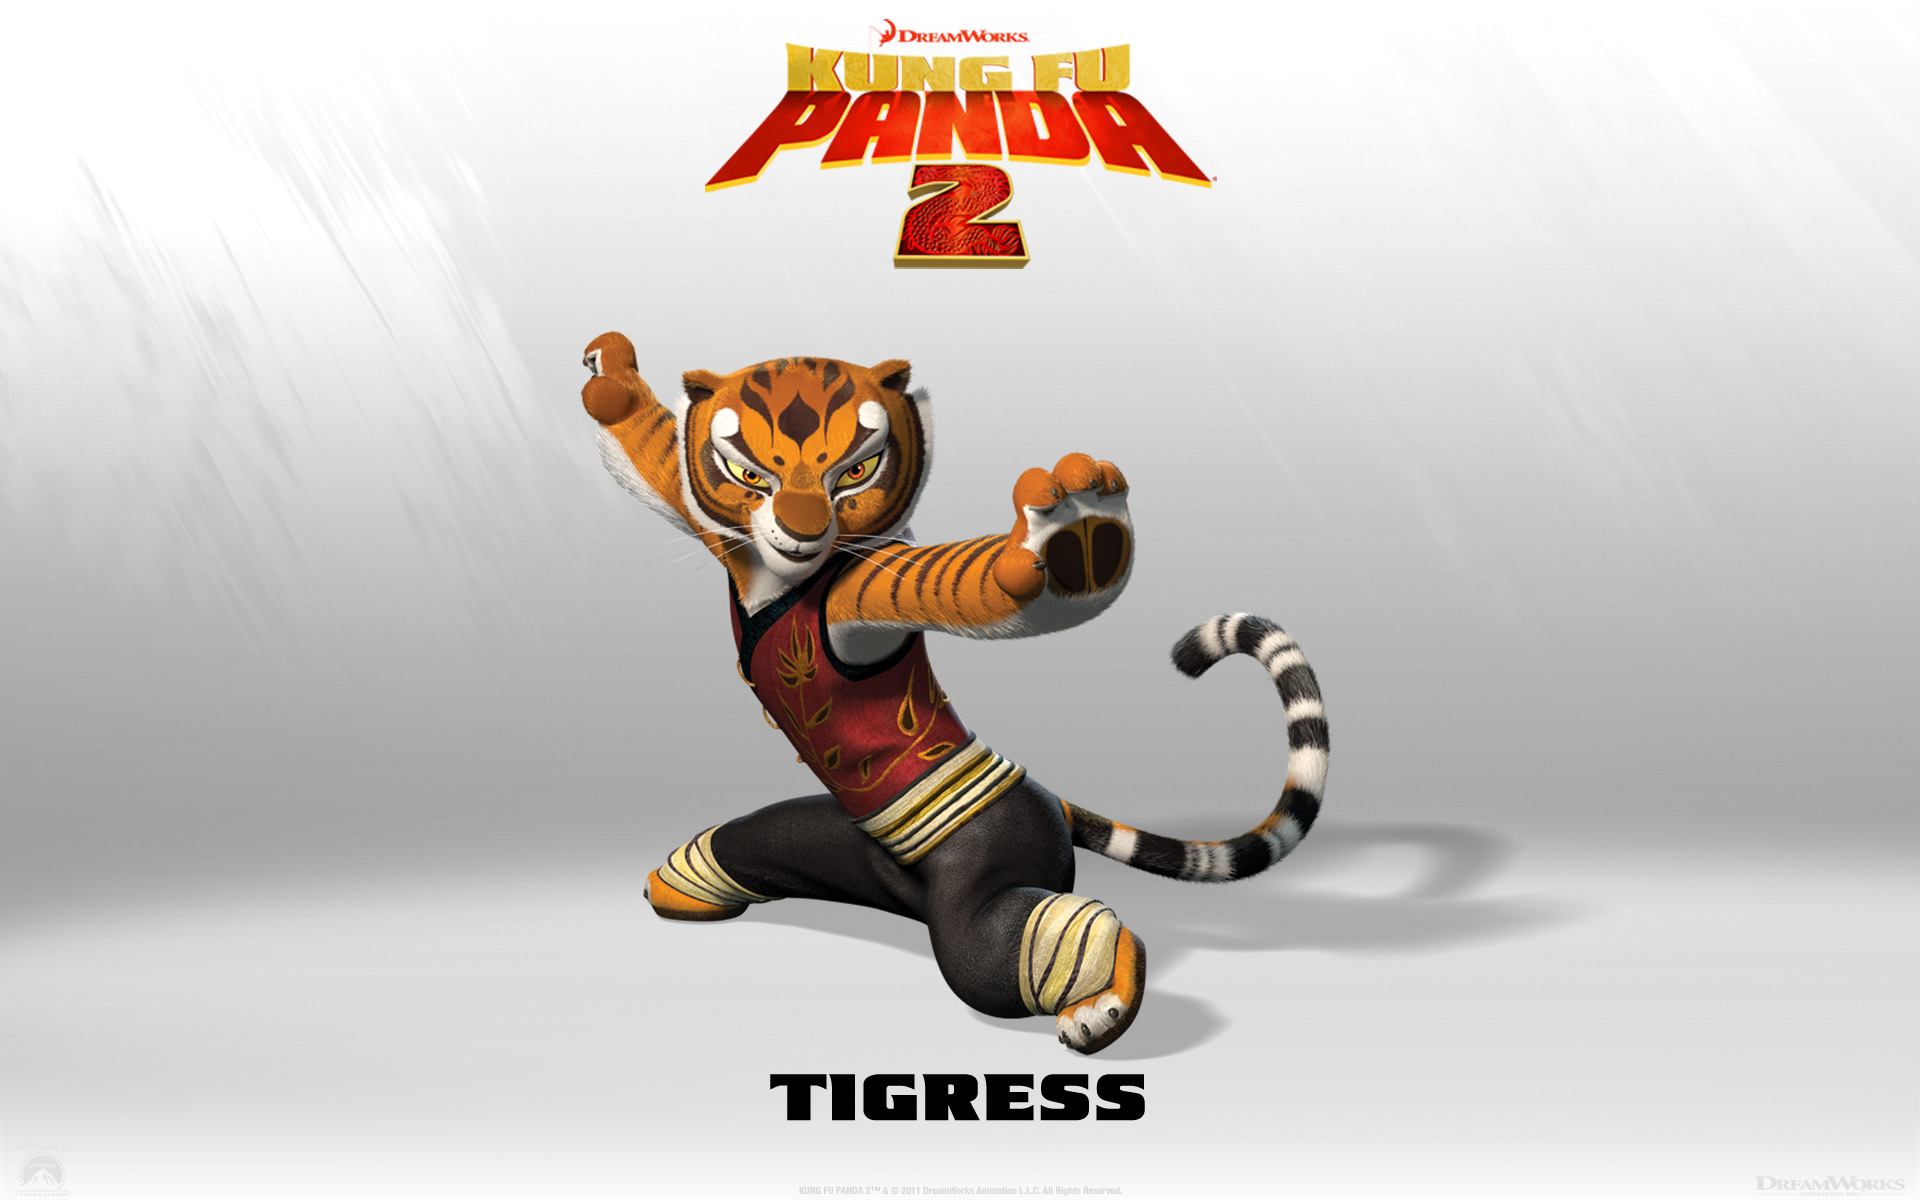 Kung fu panda iphone wallpaper - Tigress From Kung Fu Panda 2 Dreamworks Cg Animated Movie Wallpaper